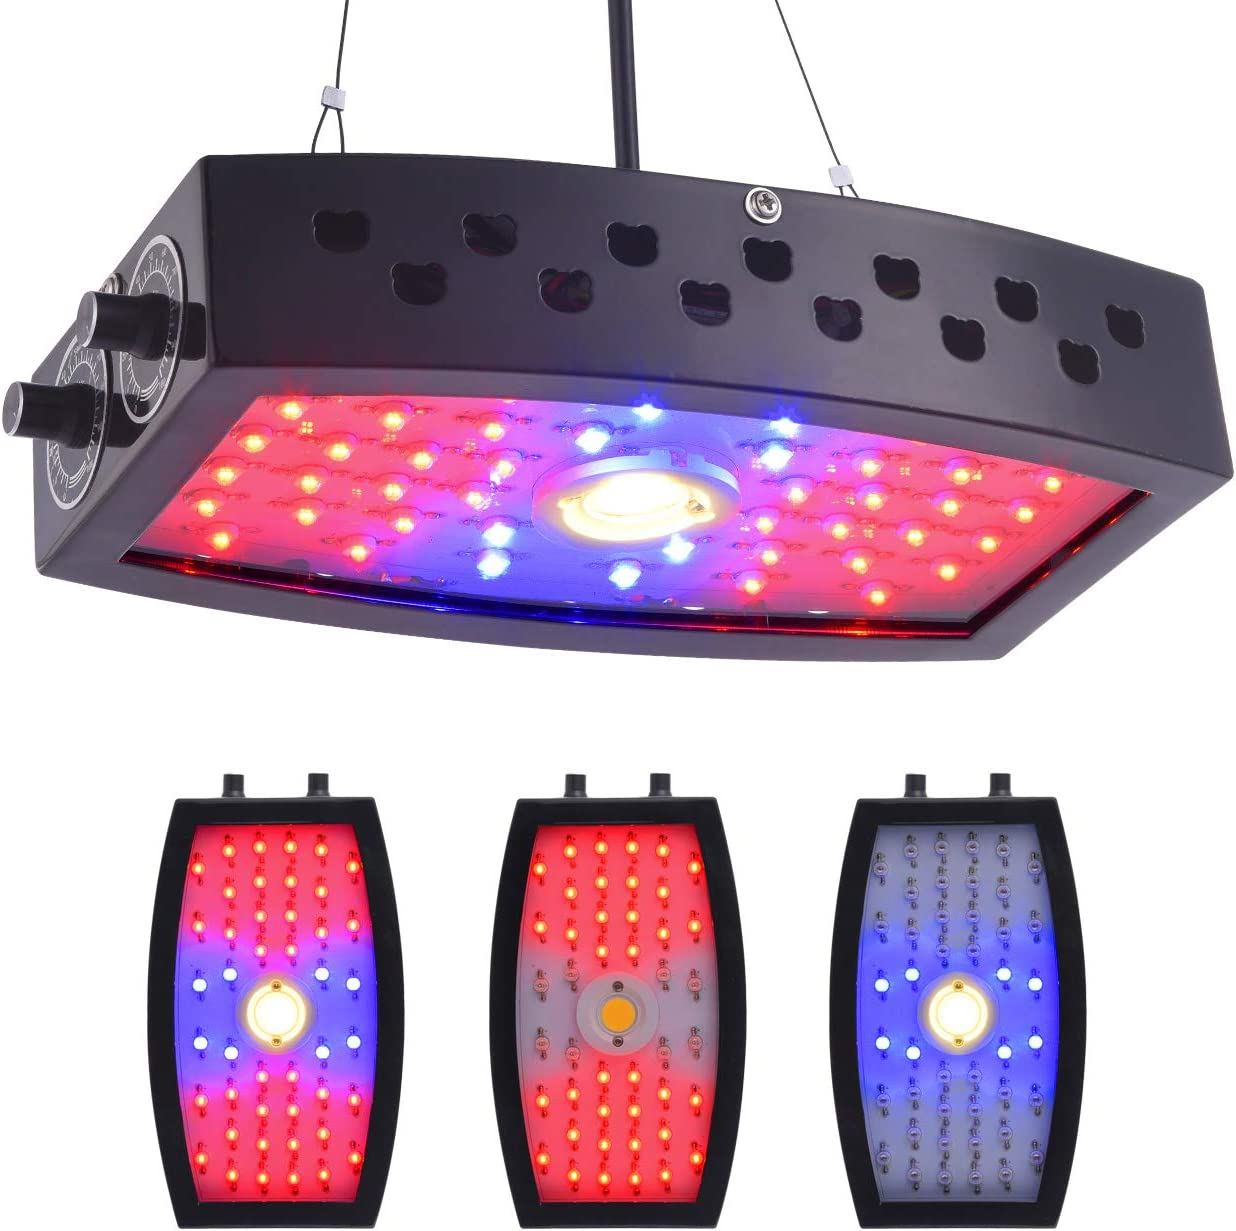 Led Grow Light – 1000W Grow Lights for Indoor Plants Full Spectrum, Plant Grow Light with Auto ON Off 4 8 12H Timer.